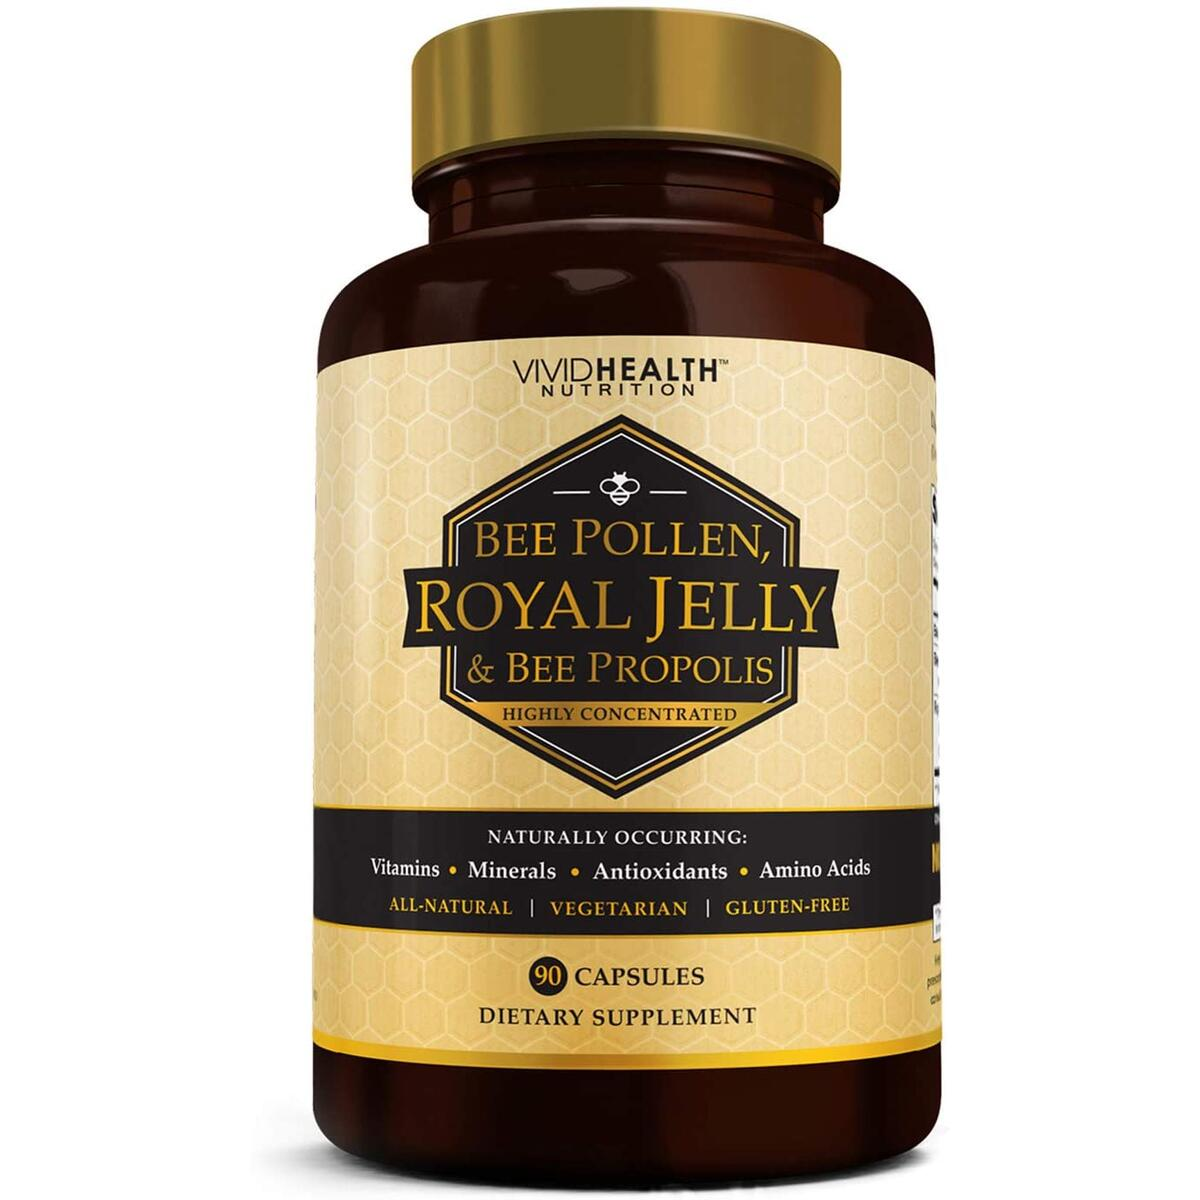 Vivid Health Nutrition High Potency Royal Jelly and Bee Pollen Capsules, 90 Count